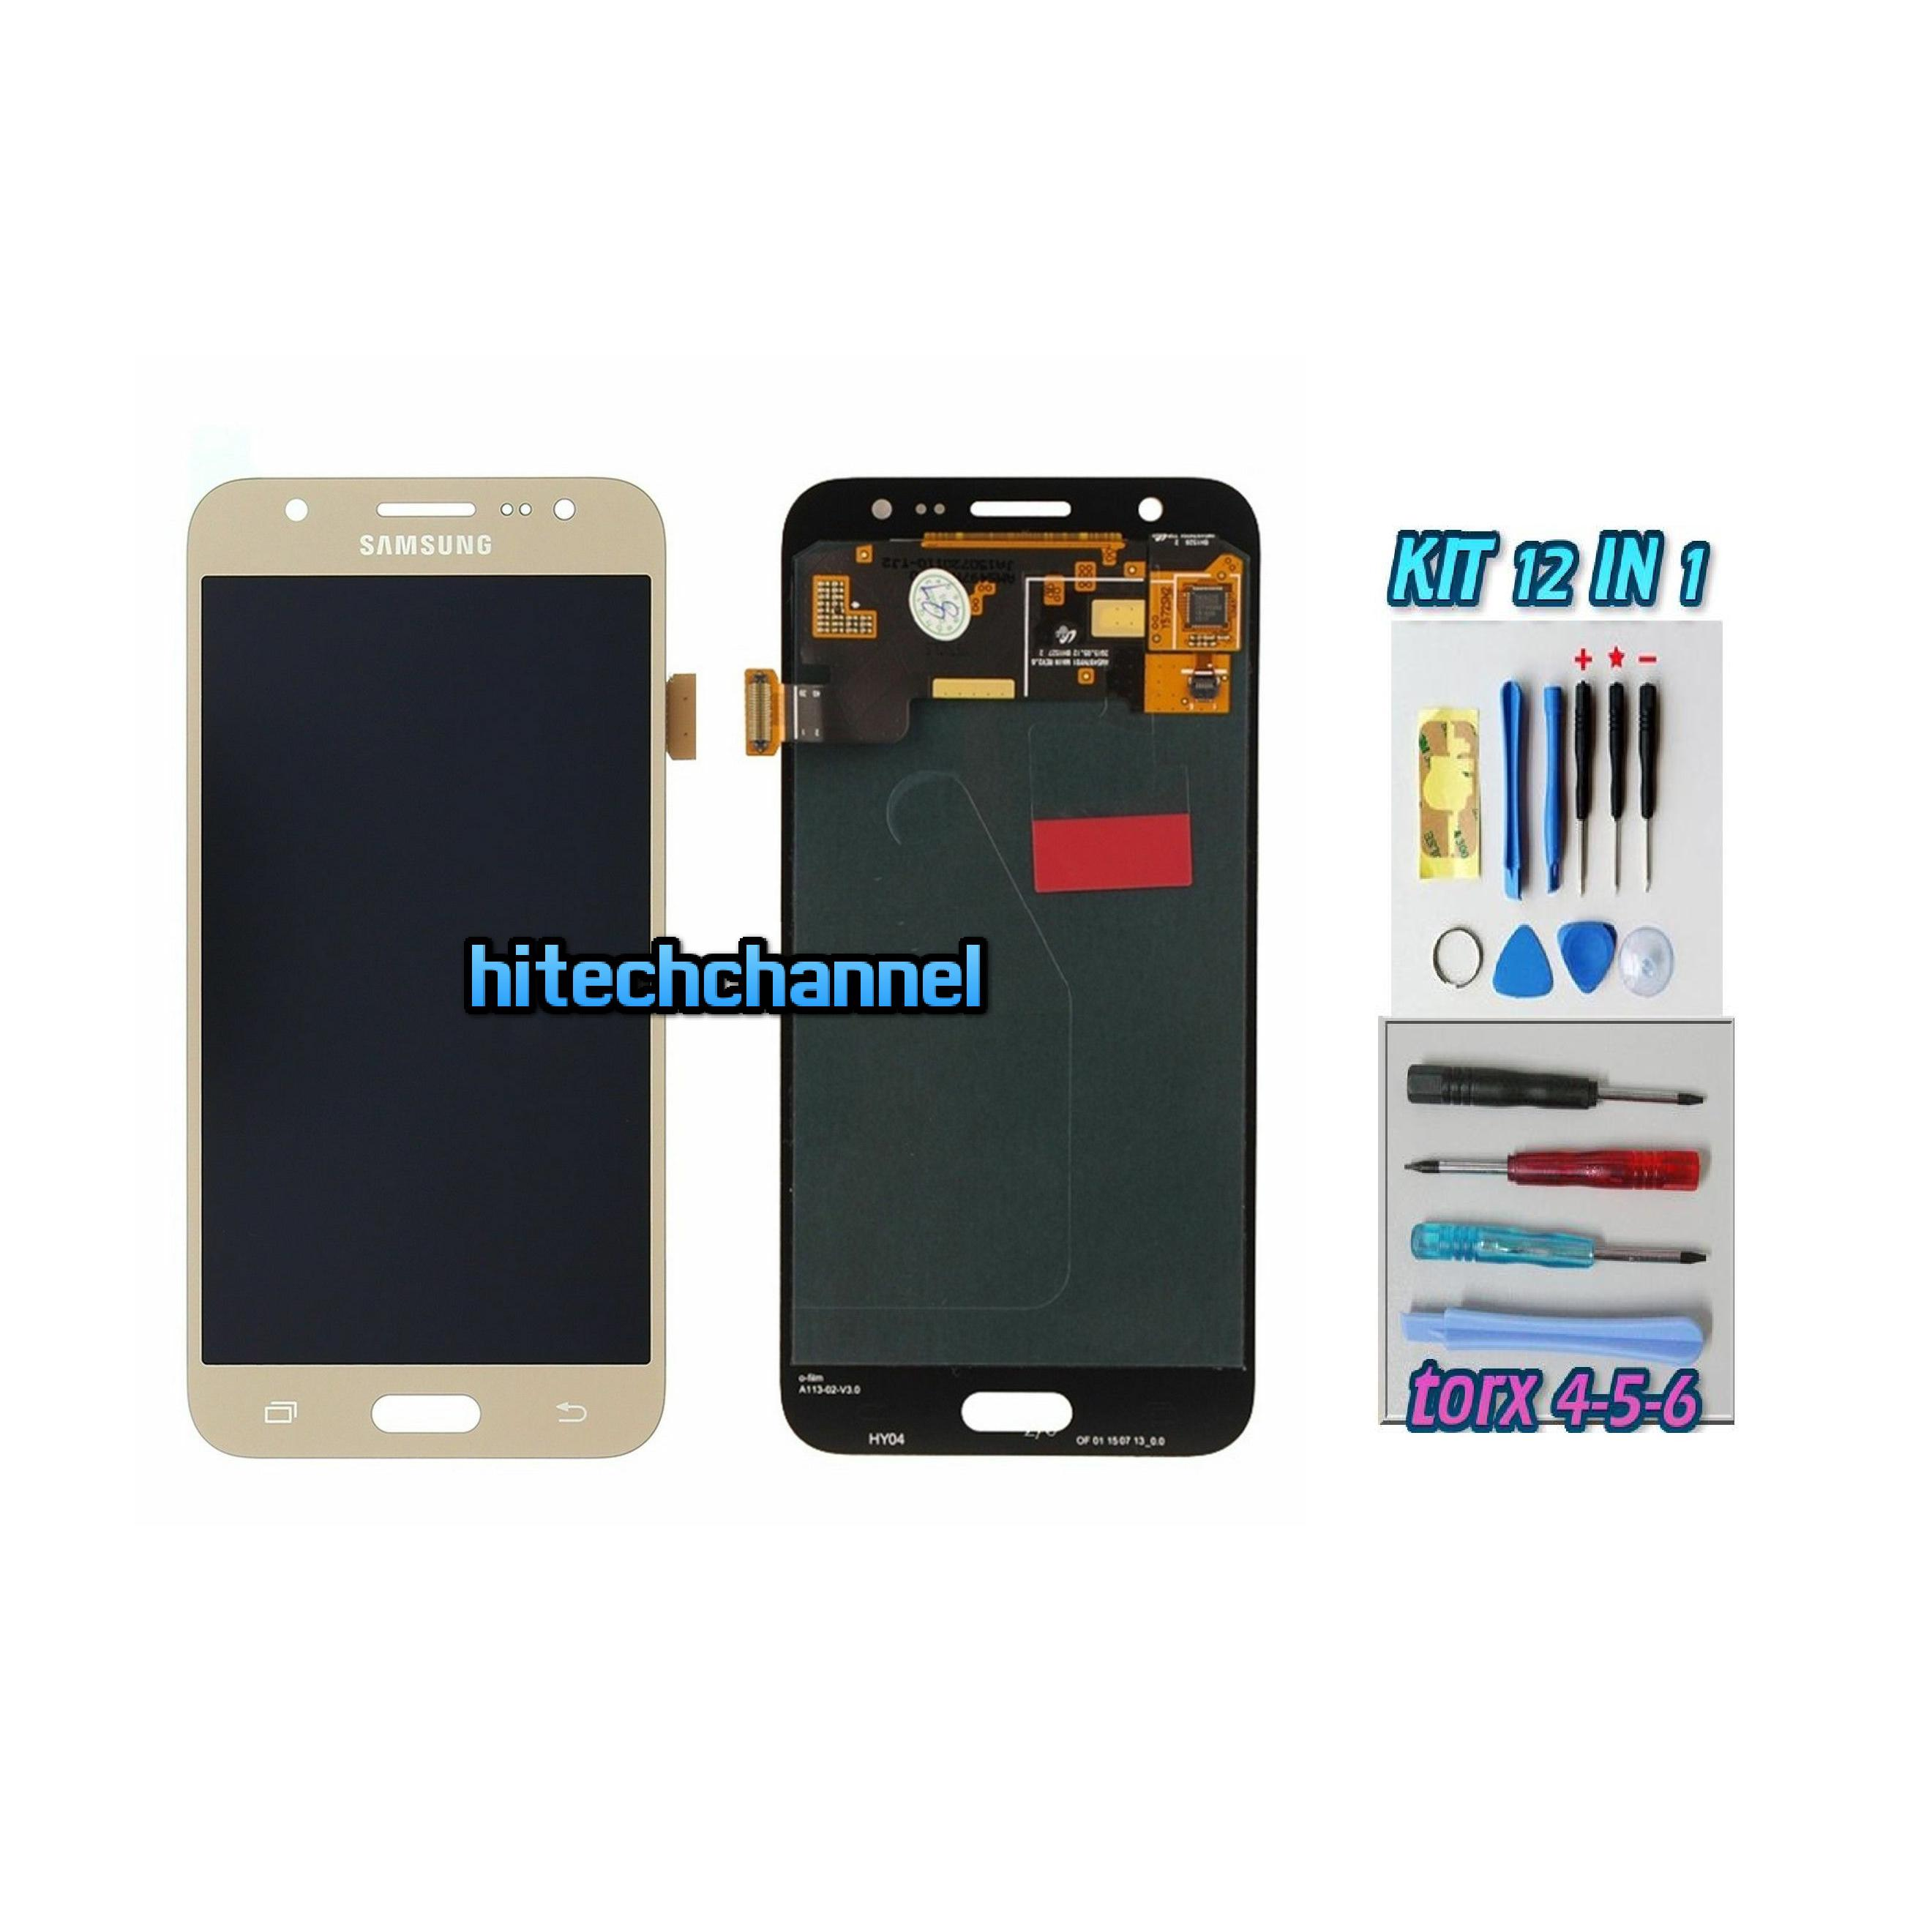 TOUCH SCREEN LCD DISPLAY ORO GOLD Samsung Galaxy J5 2015 J500 J500FN + kit 9 in 1 biadesivo e colla b7000